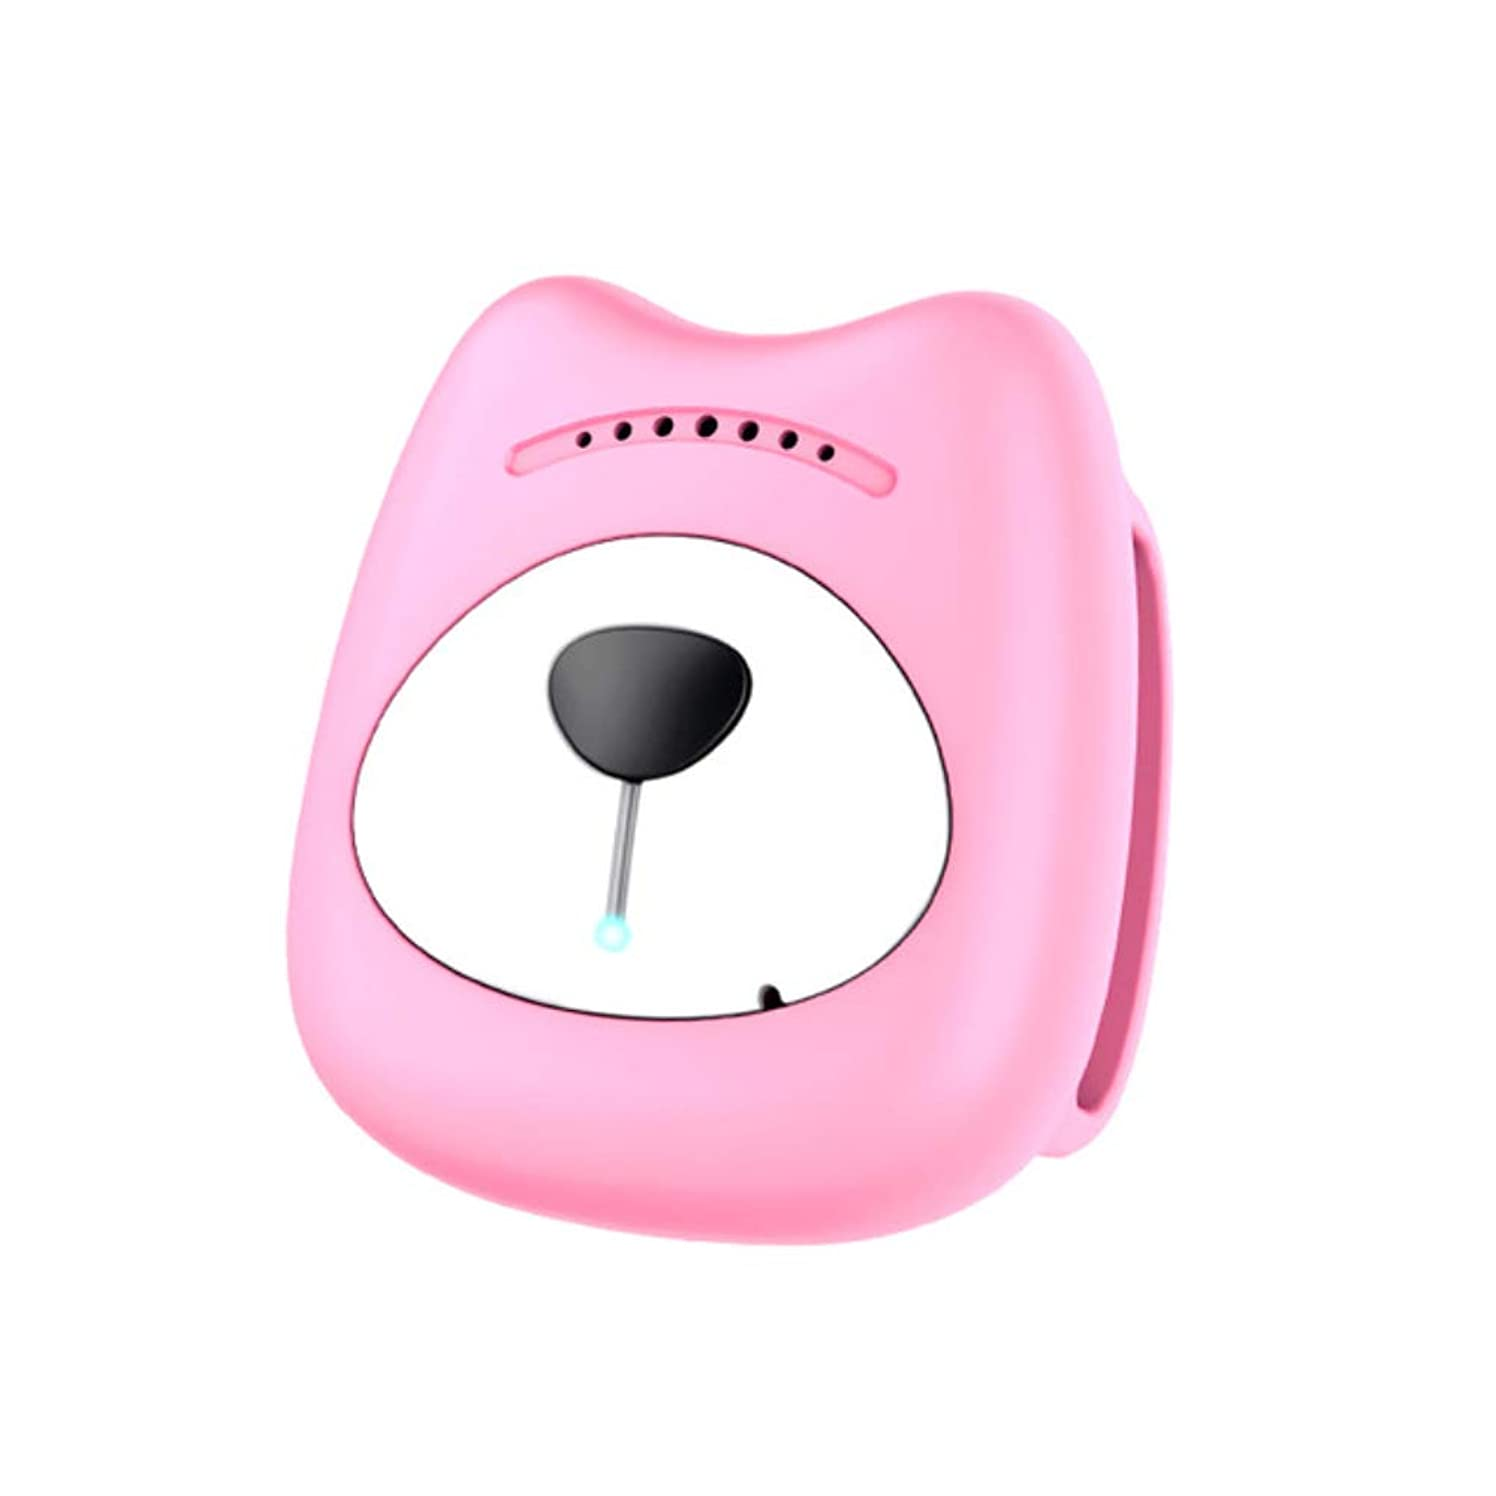 HUAXING 2019 New GPS Pet Locator Dog Mini Tracker Waterproof Anti-Lost Smart Collar Pet Positioning Pet Finder Necklace Mobile Remote,Pink